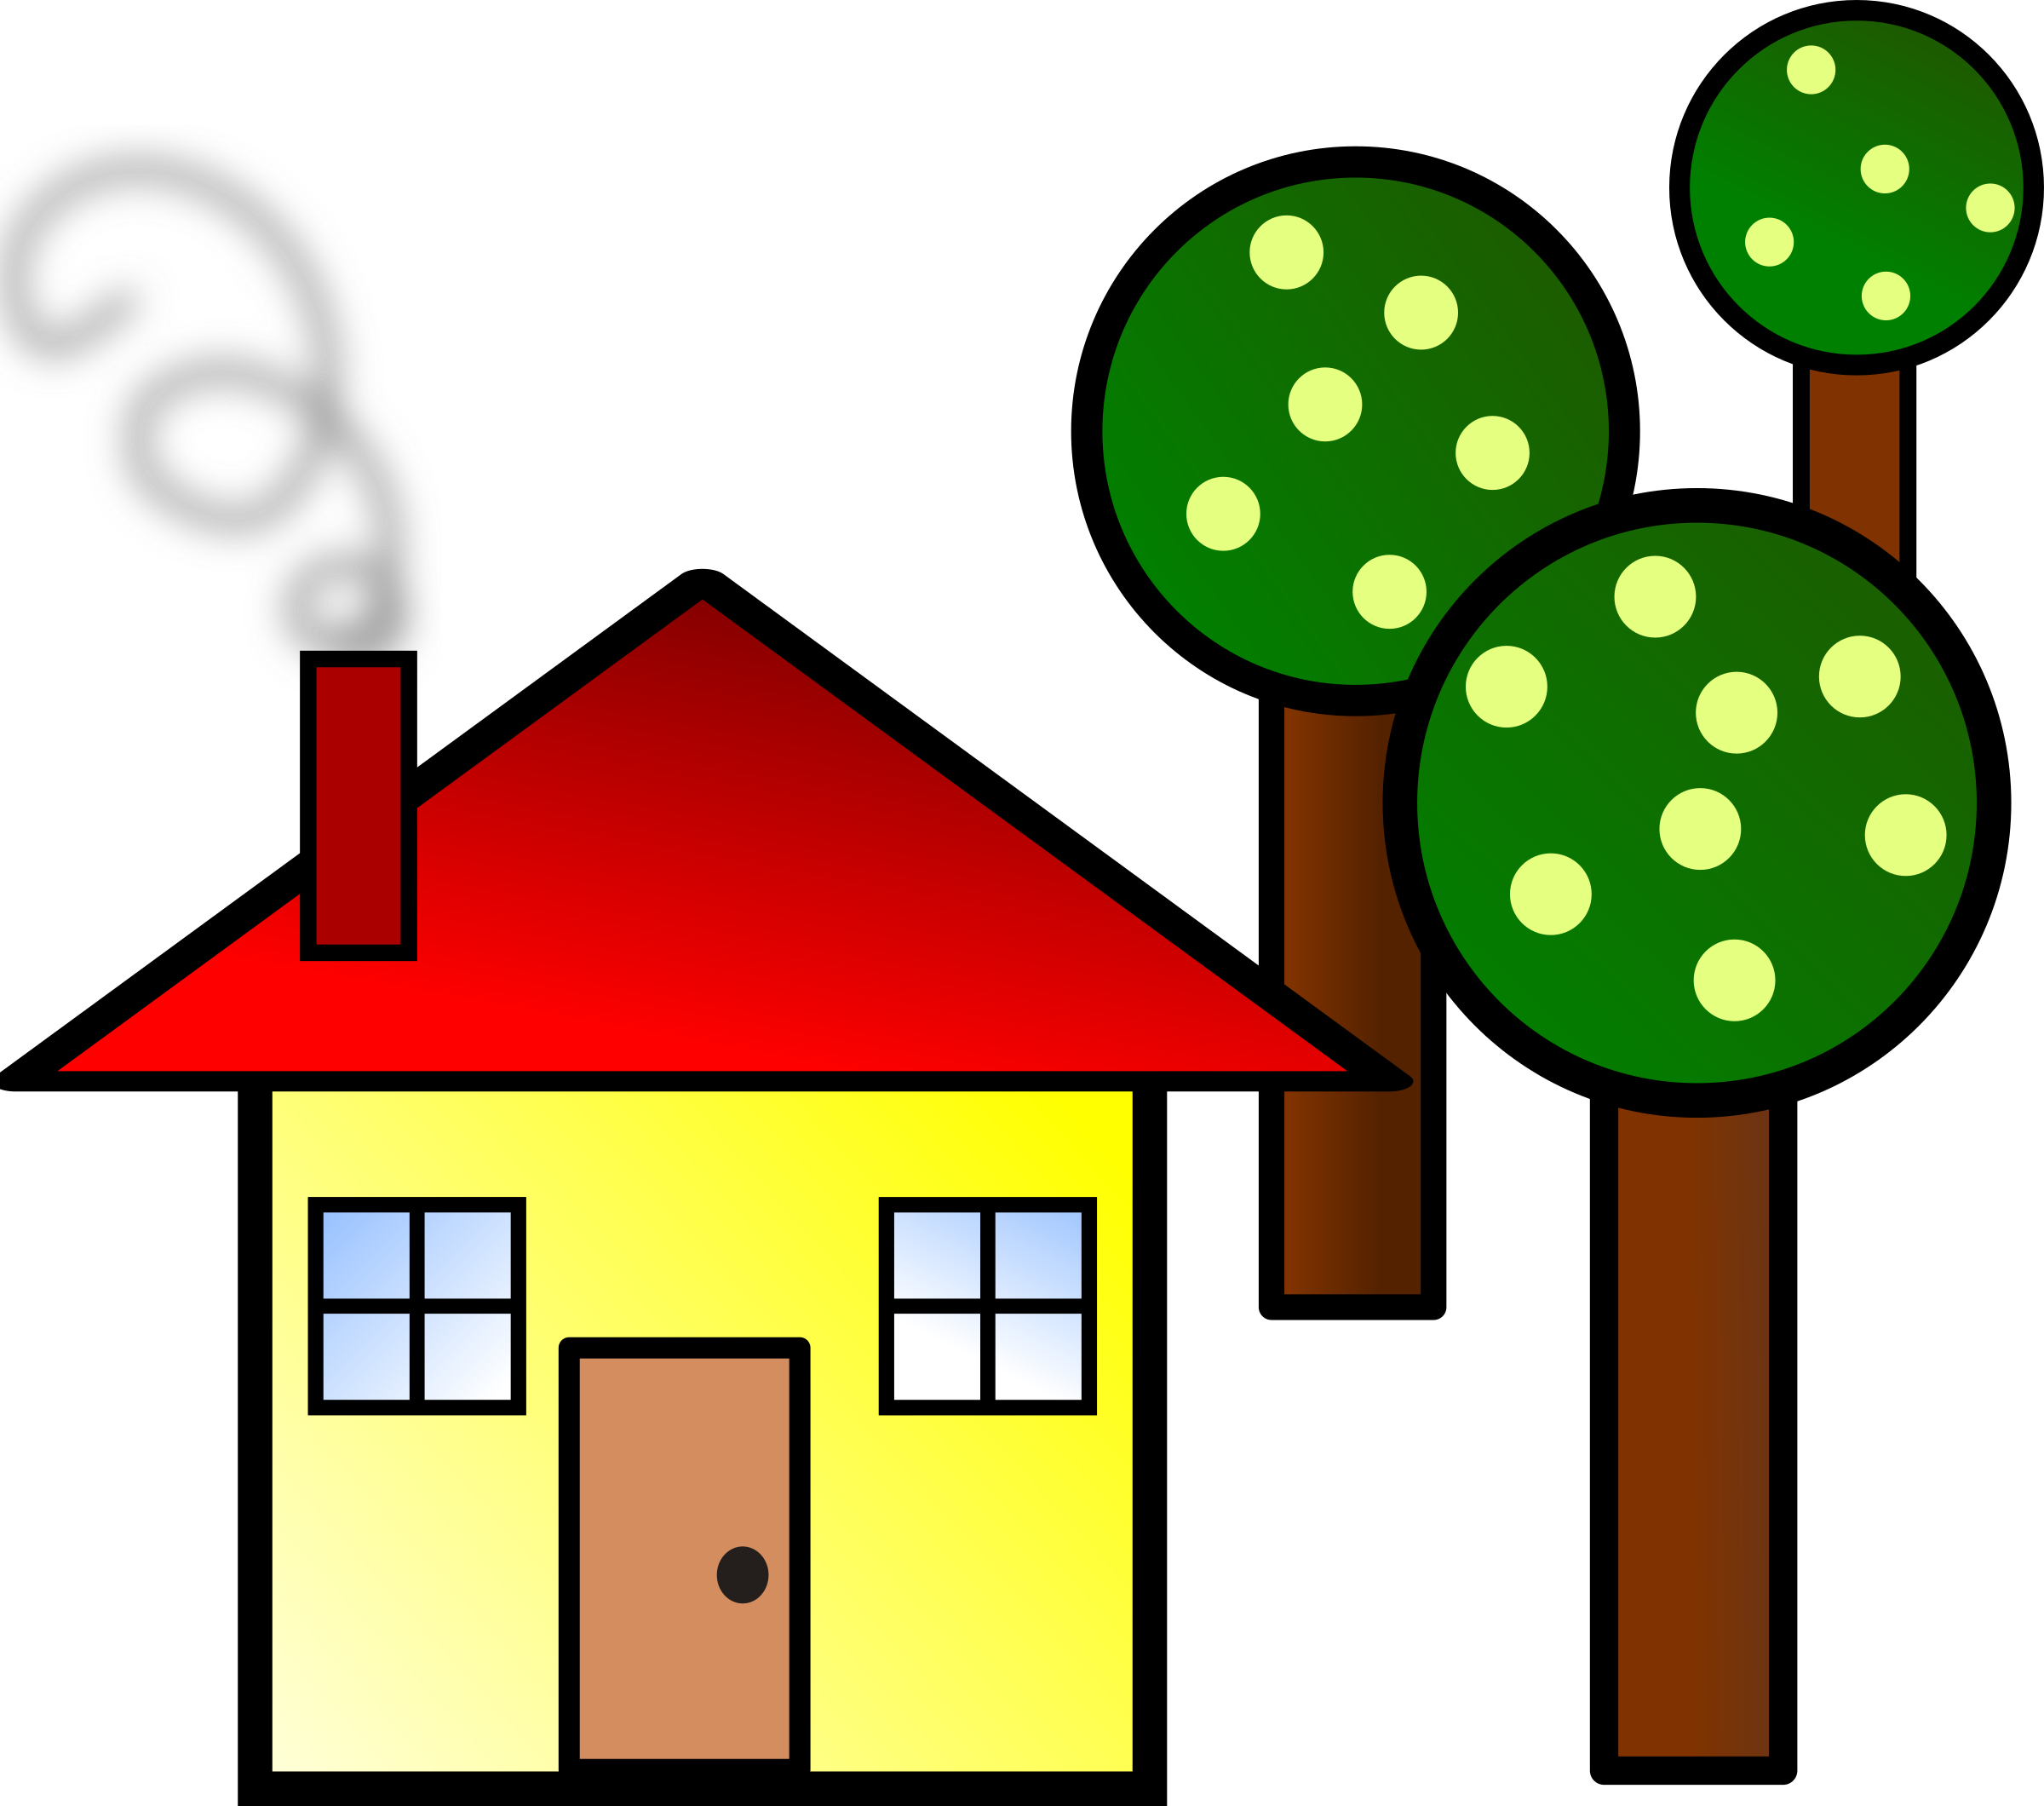 House project clipart image free stock Simple House Clipart at GetDrawings.com | Free for personal use ... image free stock